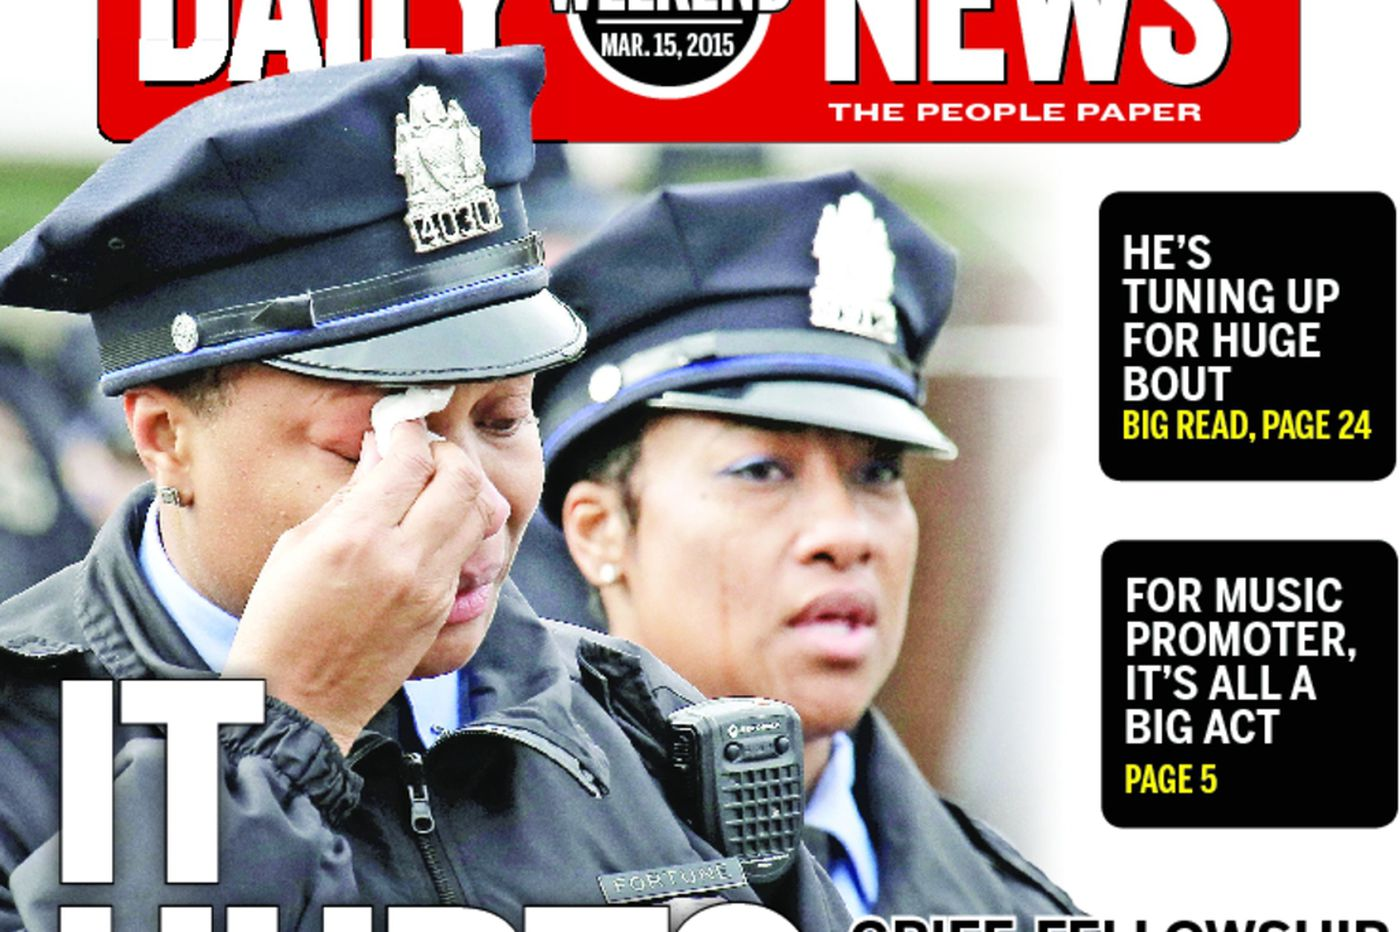 Dailynews Monthly Covers 03/14/15